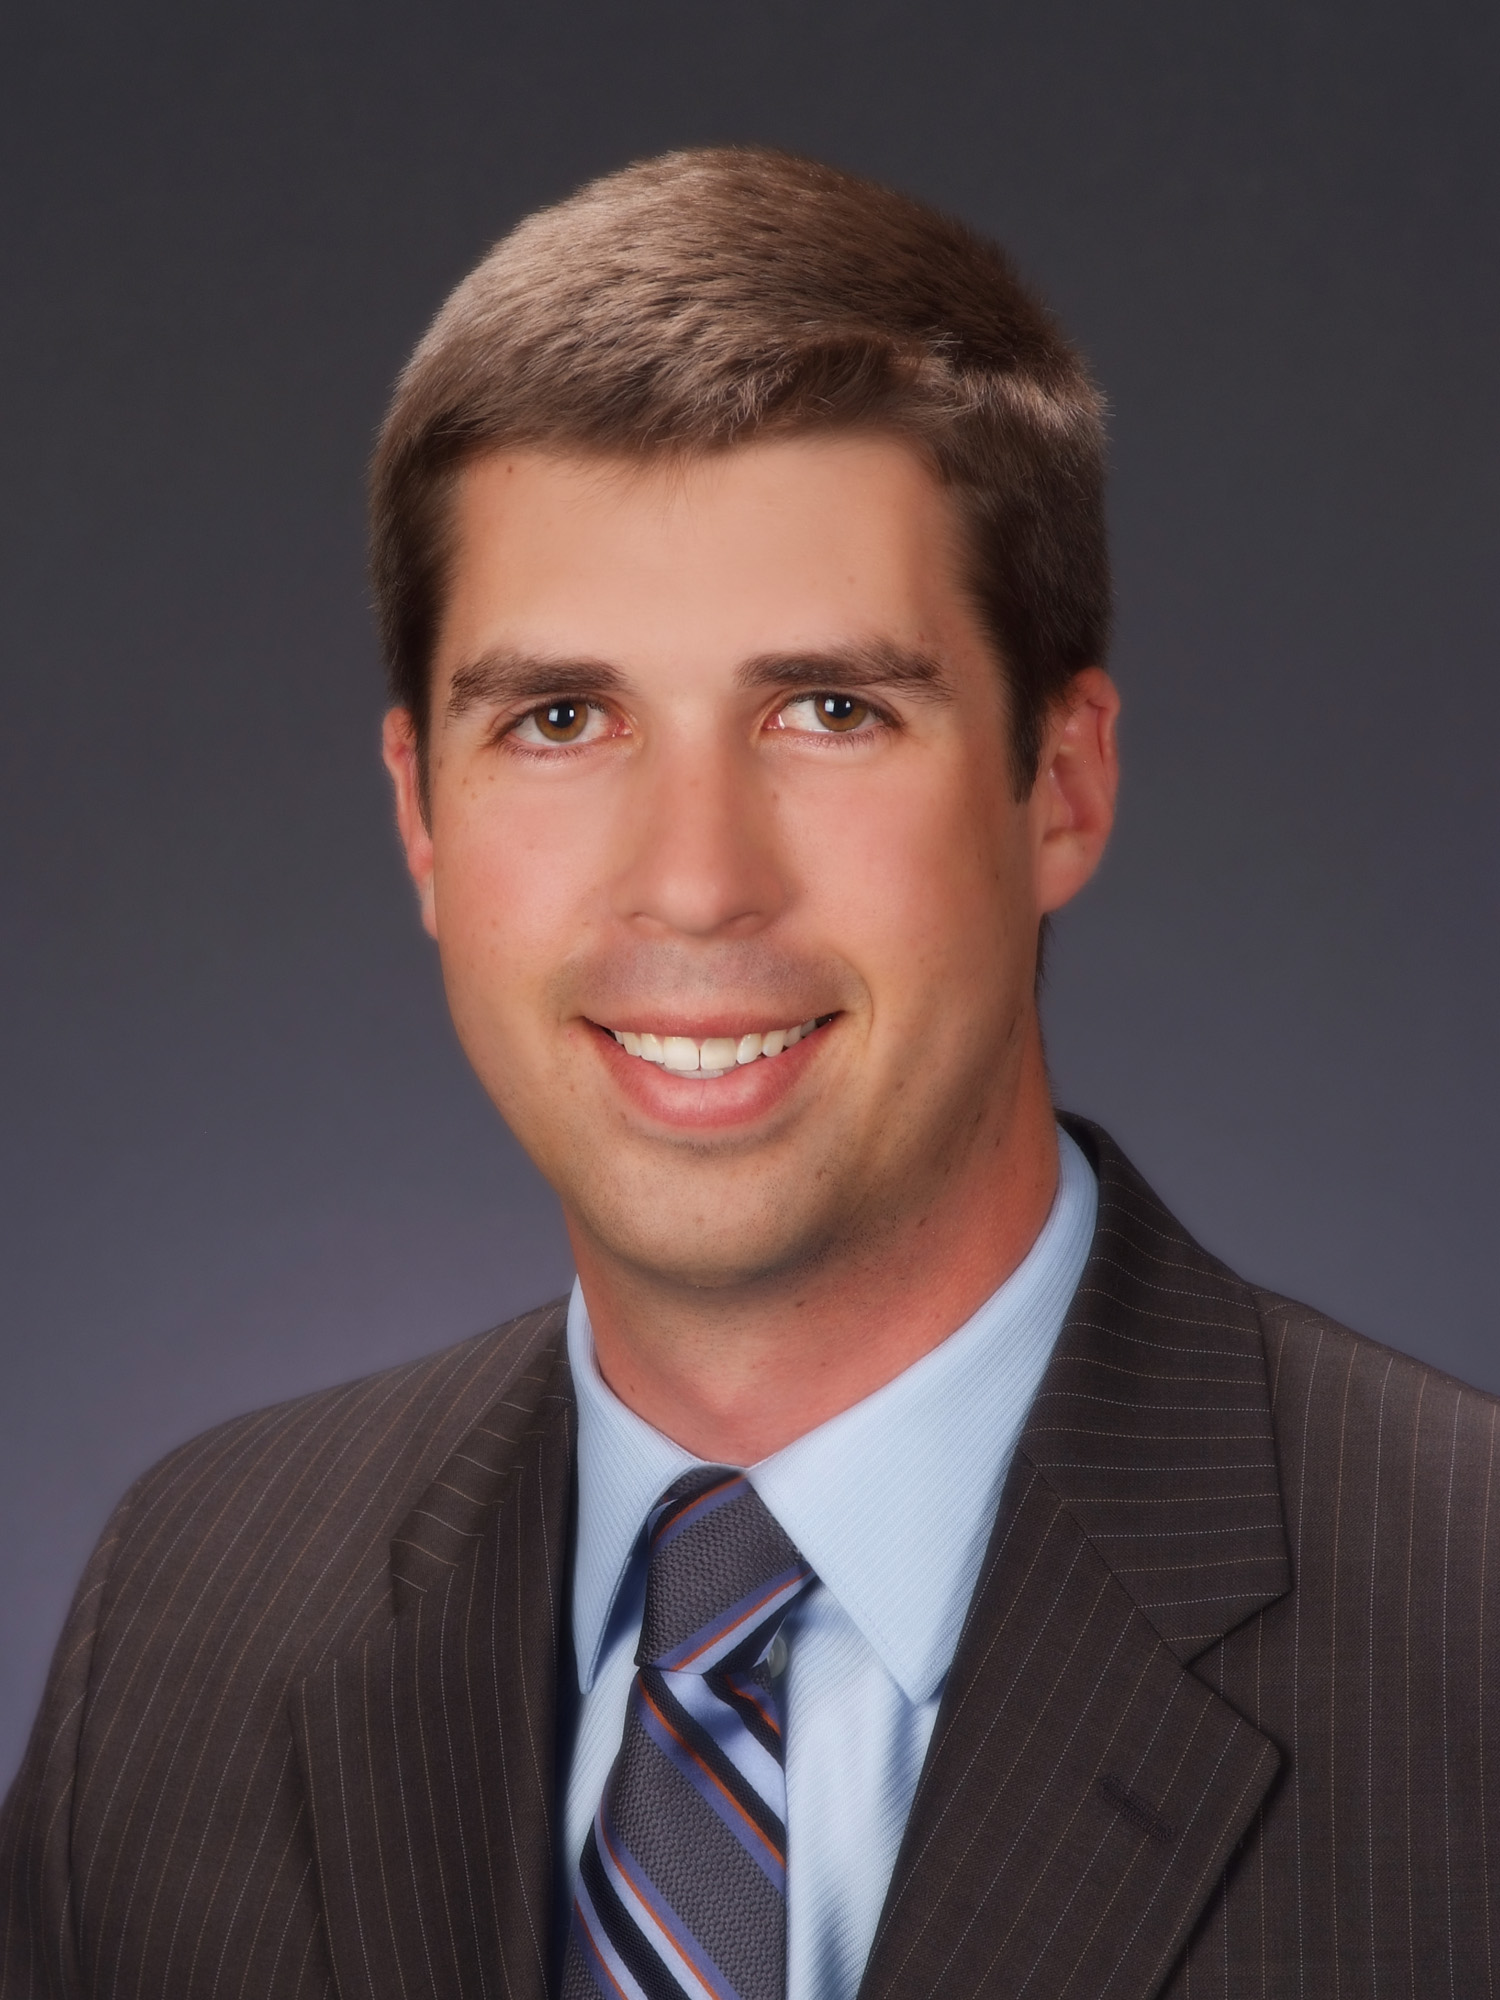 Bradley W. Raines's advisor photo